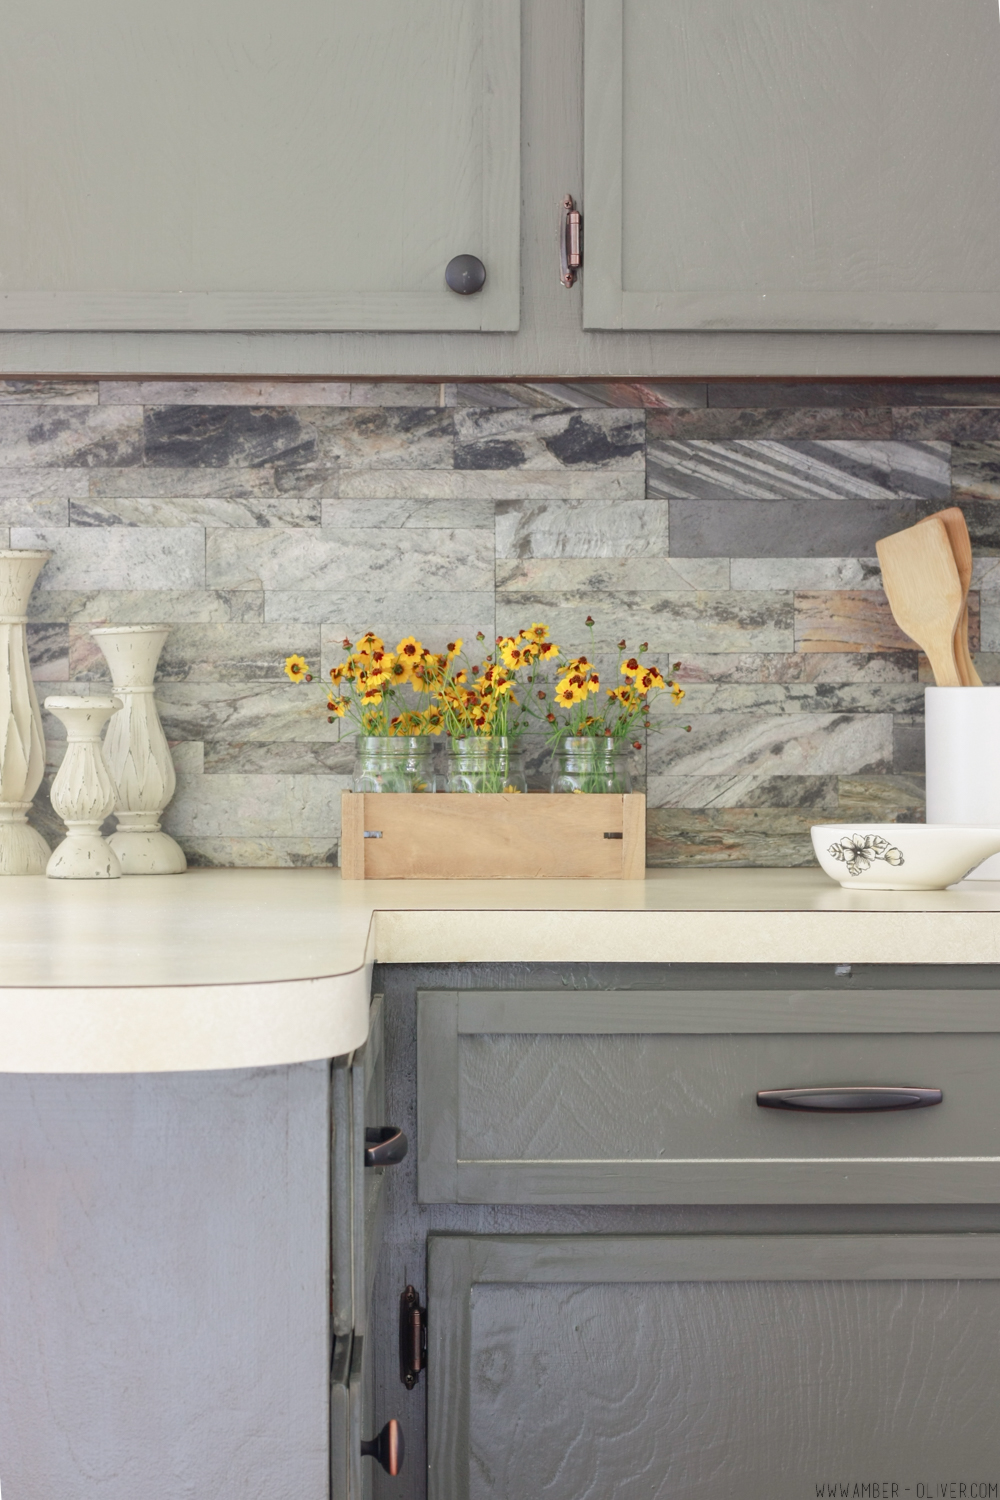 Kitchen remodel on a budget! Find out how to install peel and stick backsplash and tackle this project in one afternoon!